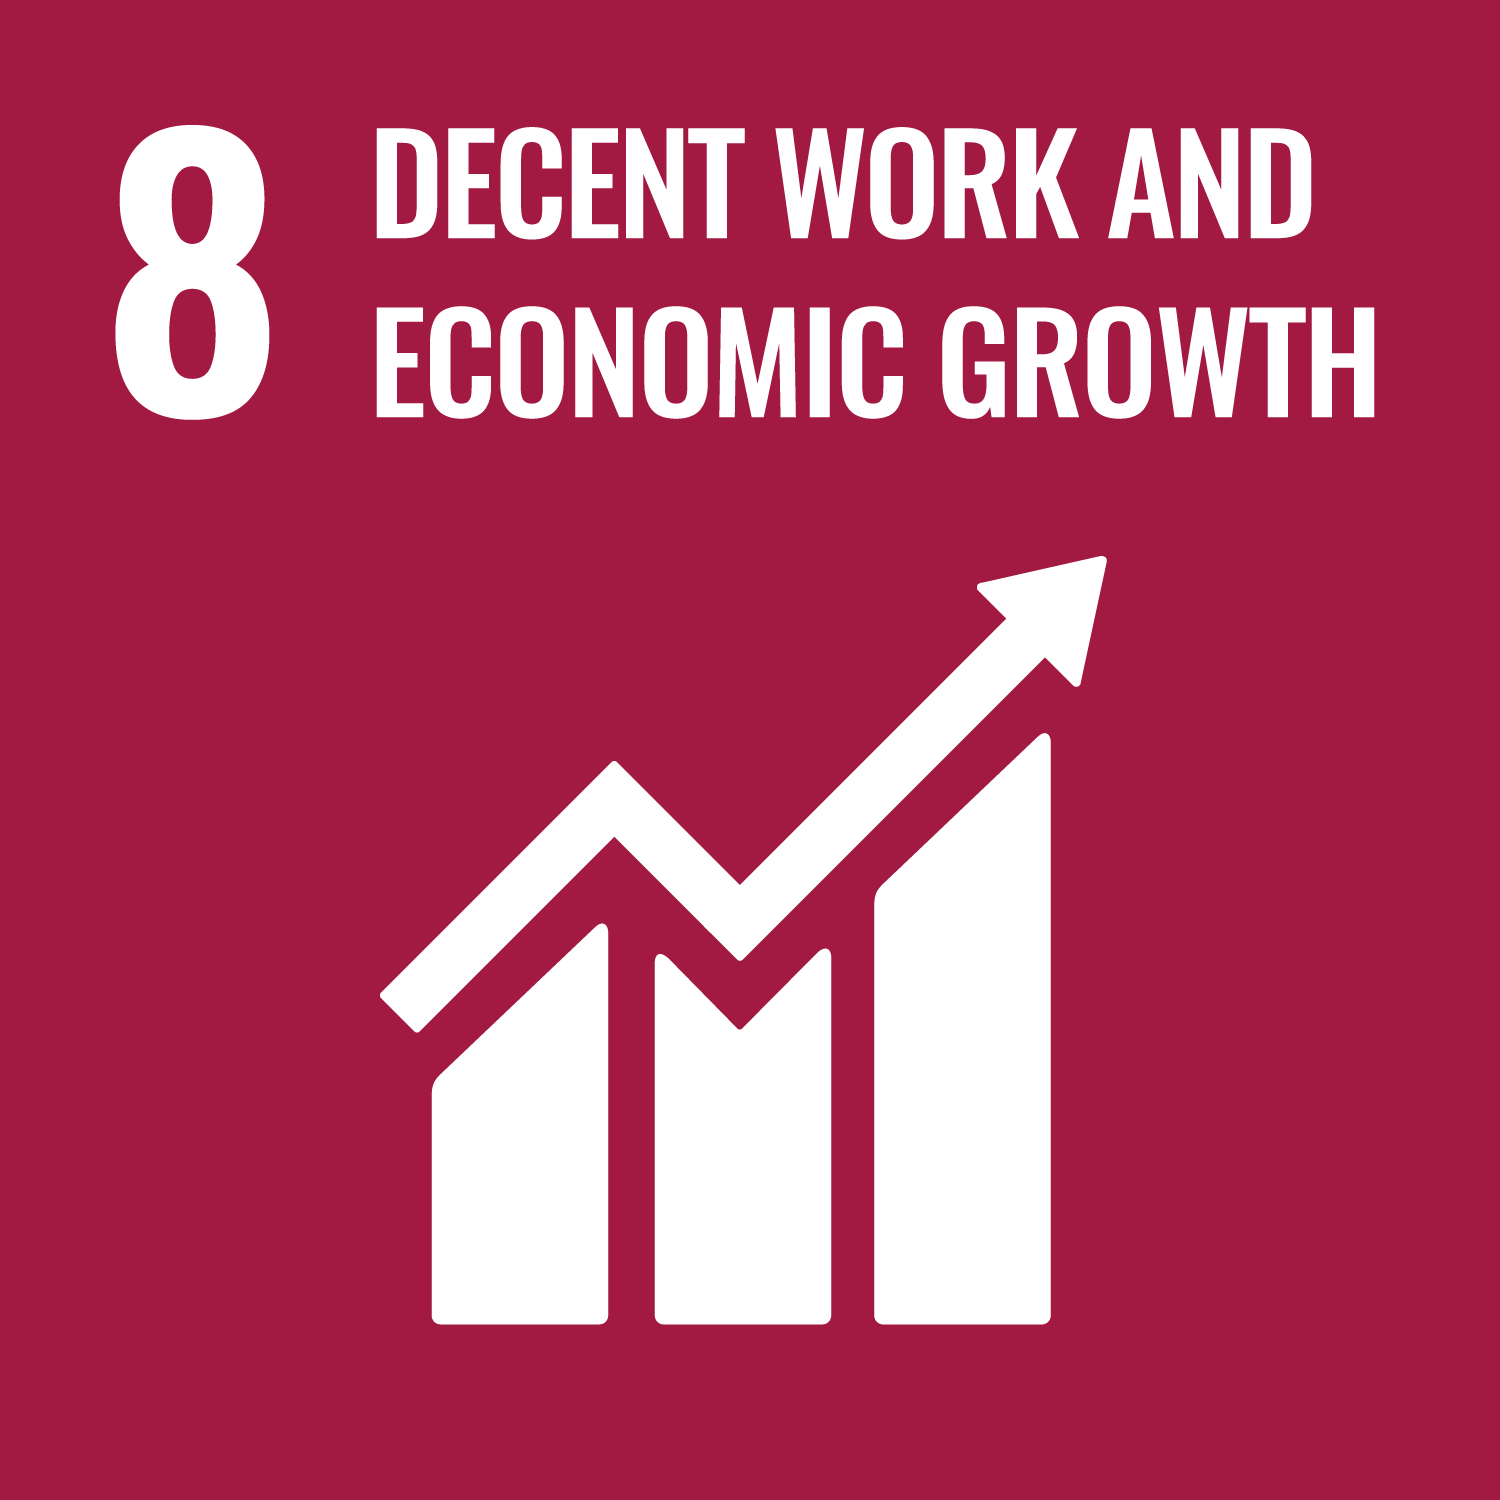 Decent work and economic growth Image